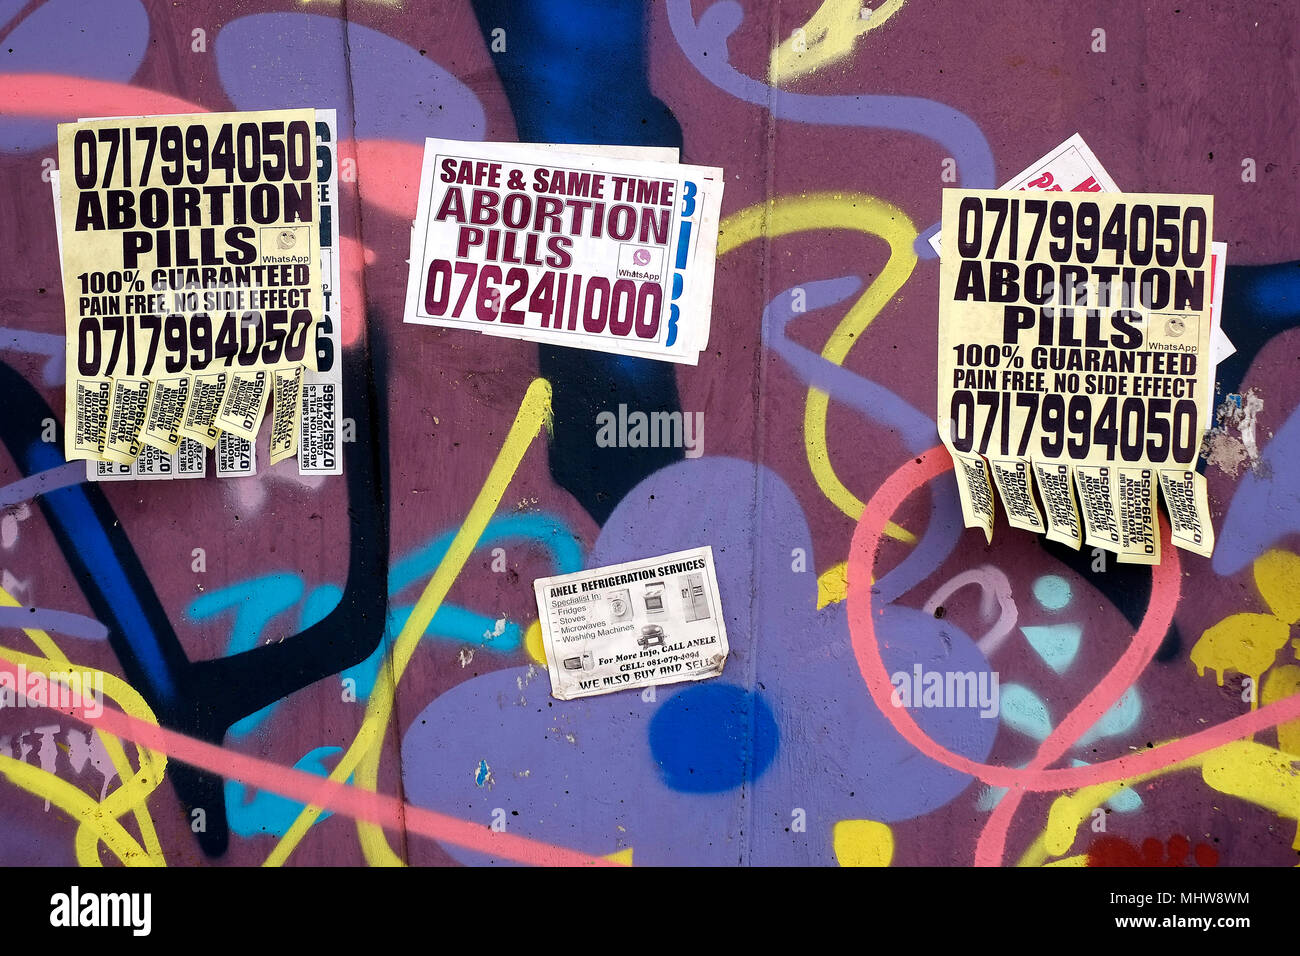 Abortion pills advertised on a wall in the Central Business District of Johannesburg, South Africa. - Stock Image